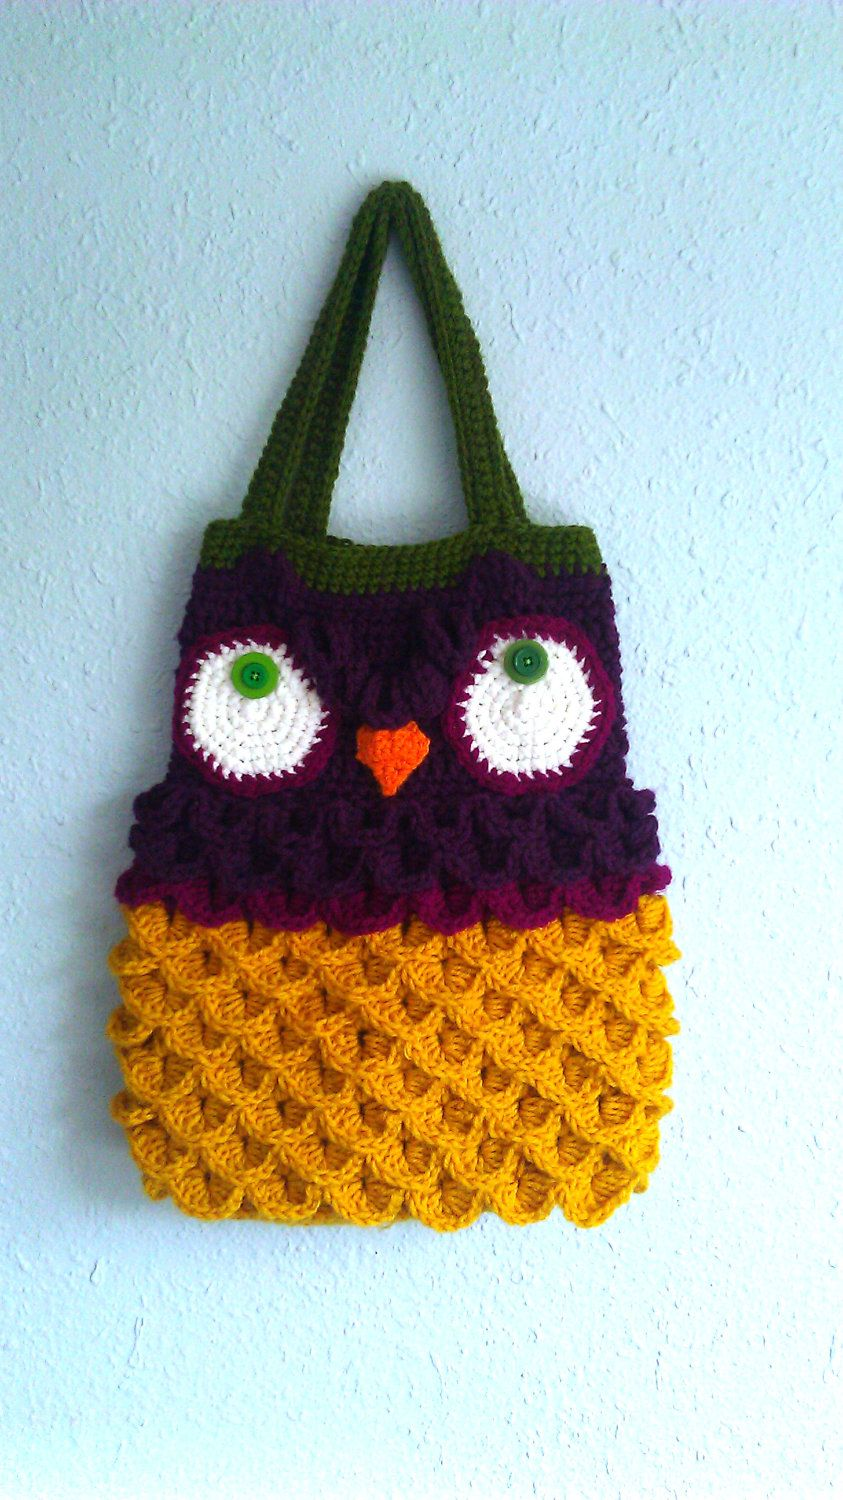 Crochet owl bag pattern bags patterns and crochet owls crochet owl bag pattern bankloansurffo Image collections